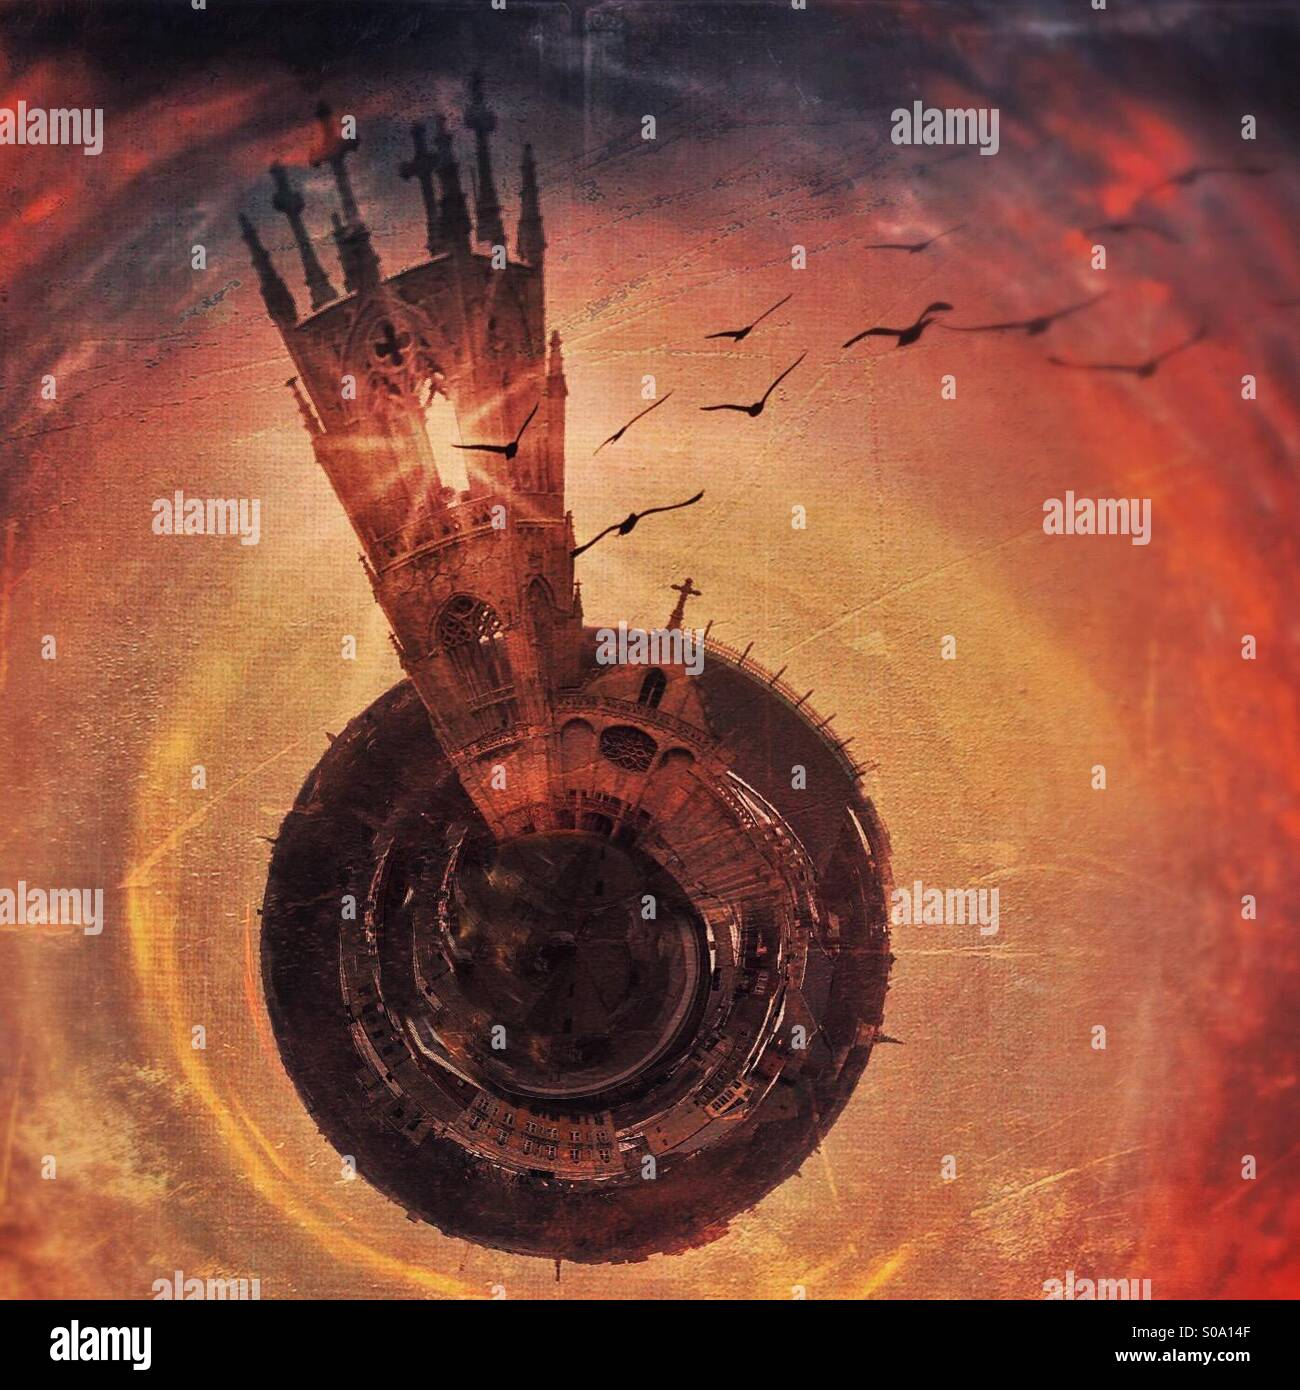 Church tower on a small planet with birds flying out. - Stock Image